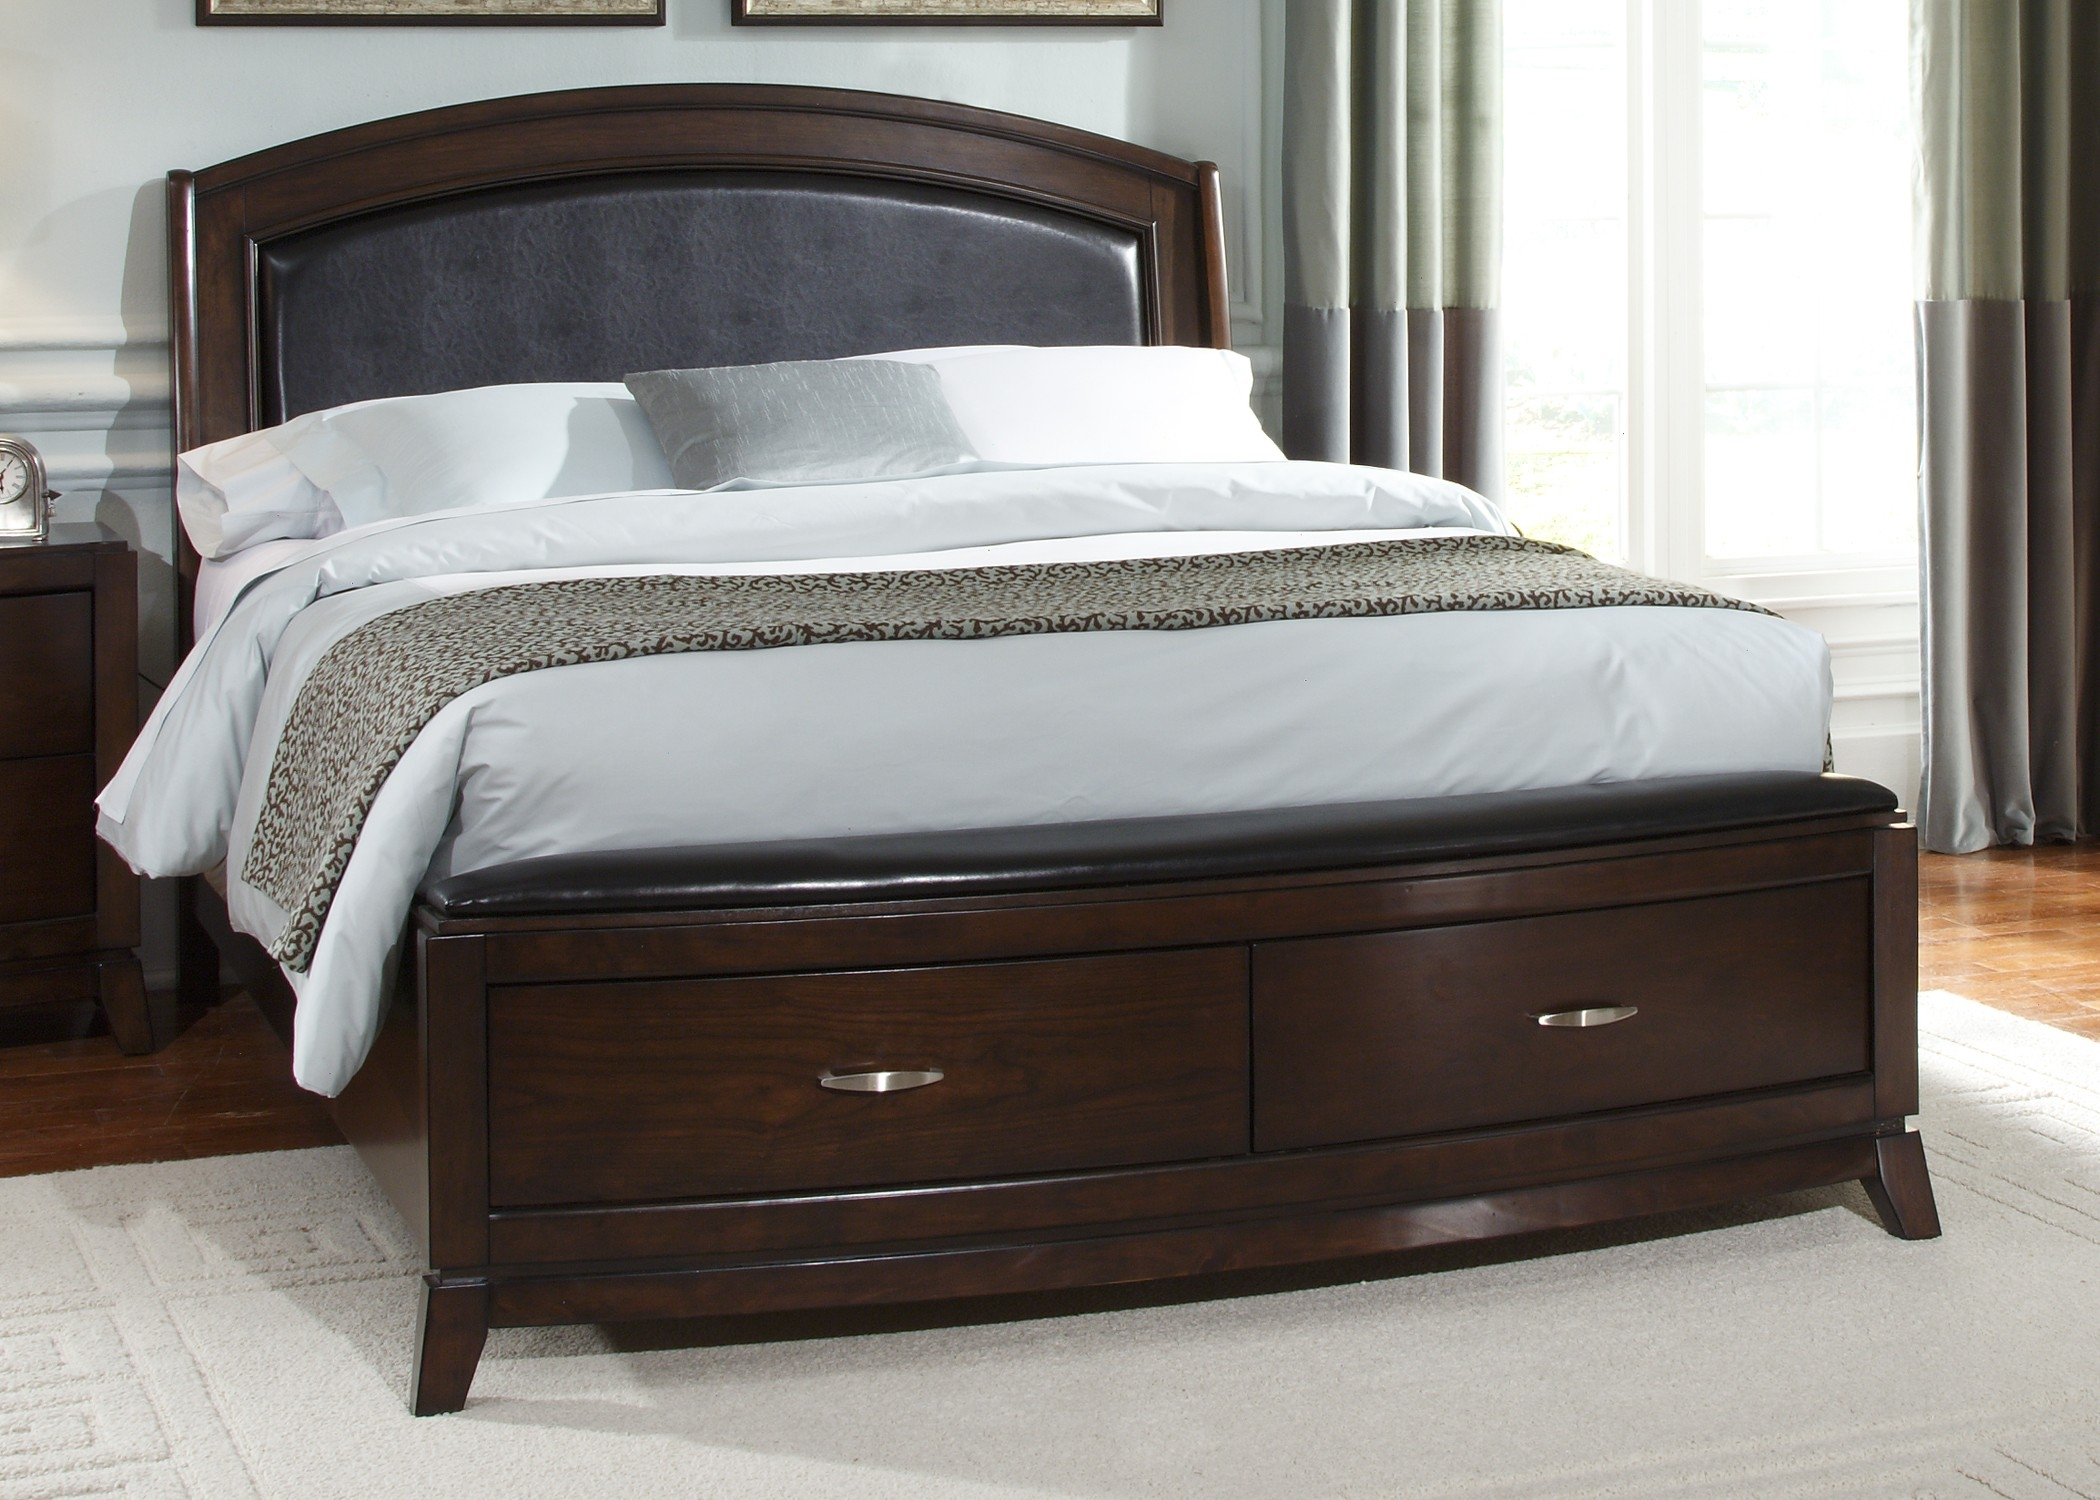 Permalink to Headboard For Queen Bed Frame